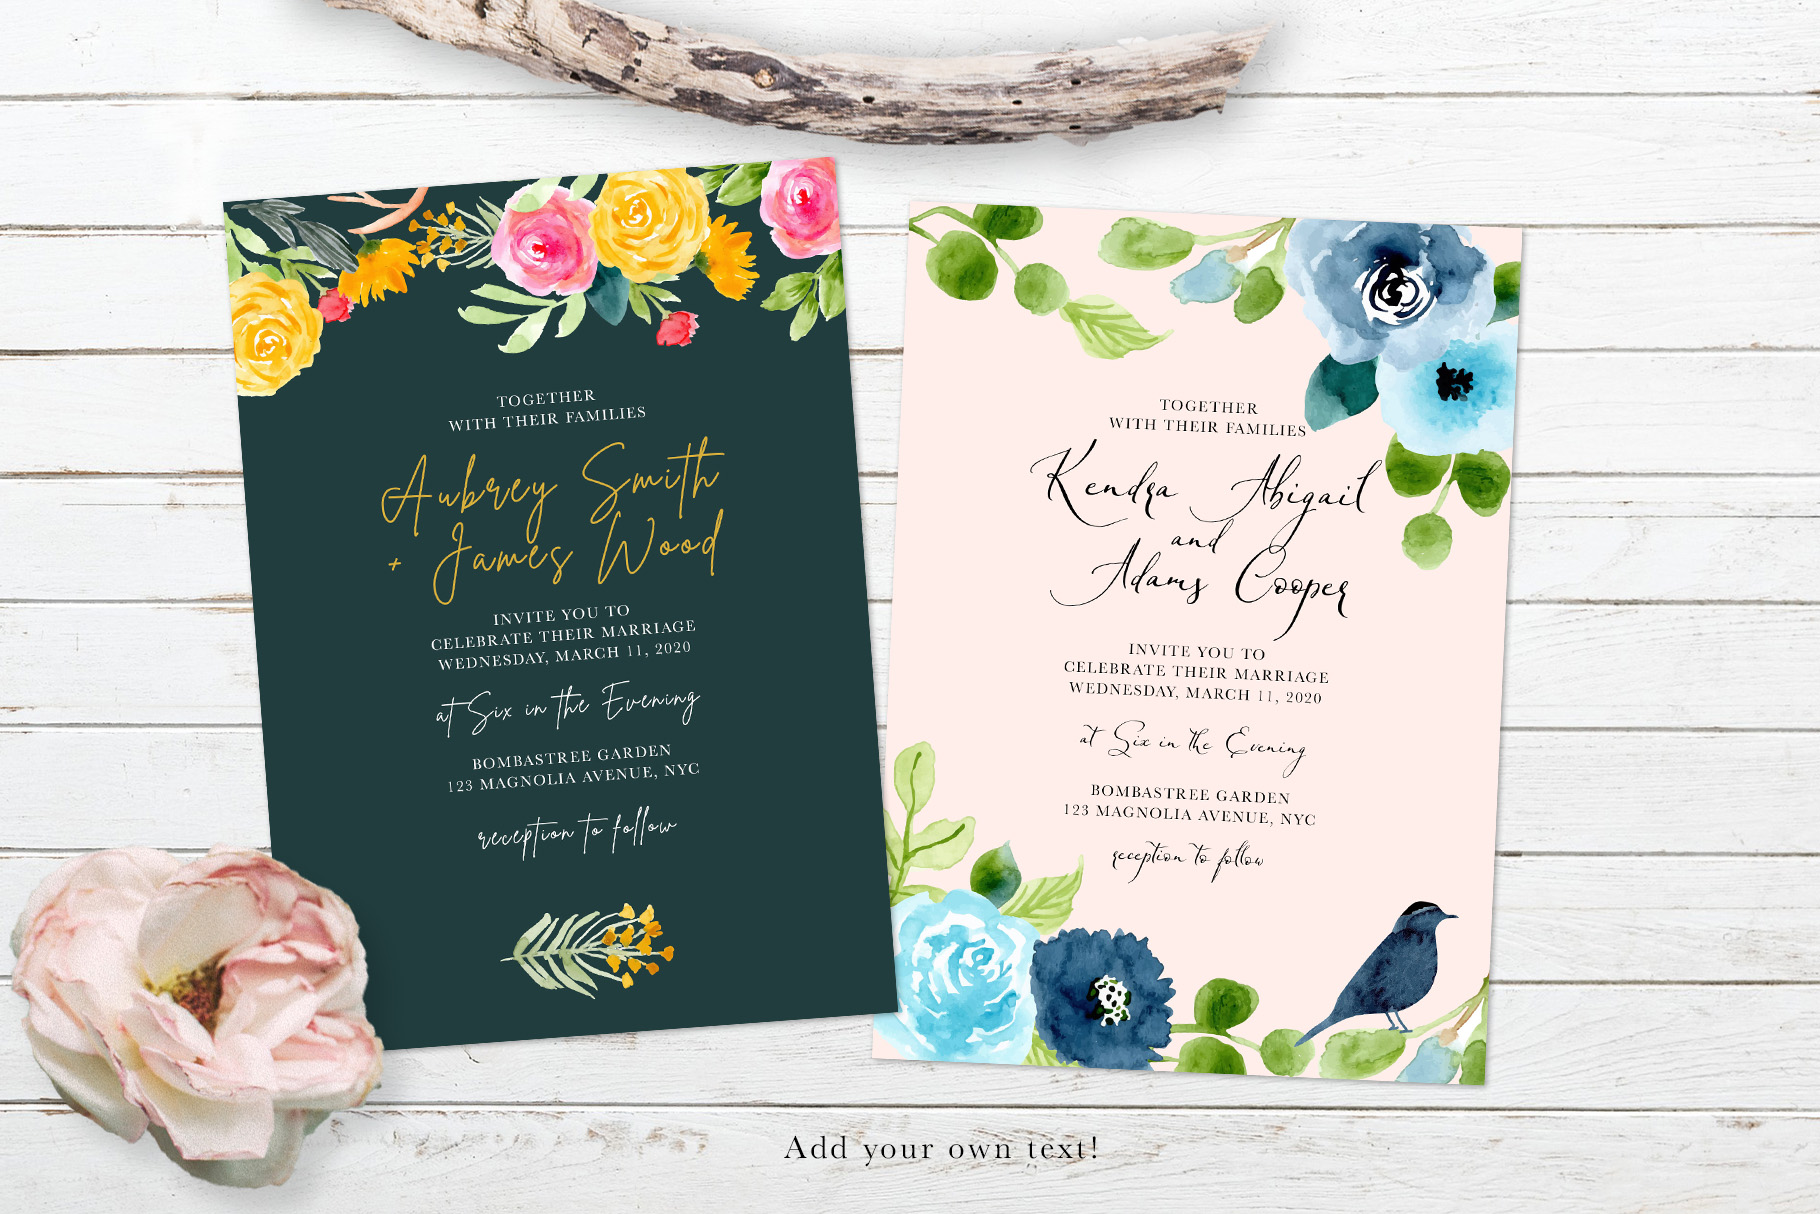 Floral Invitation Backgrounds Vol.3 example image 8